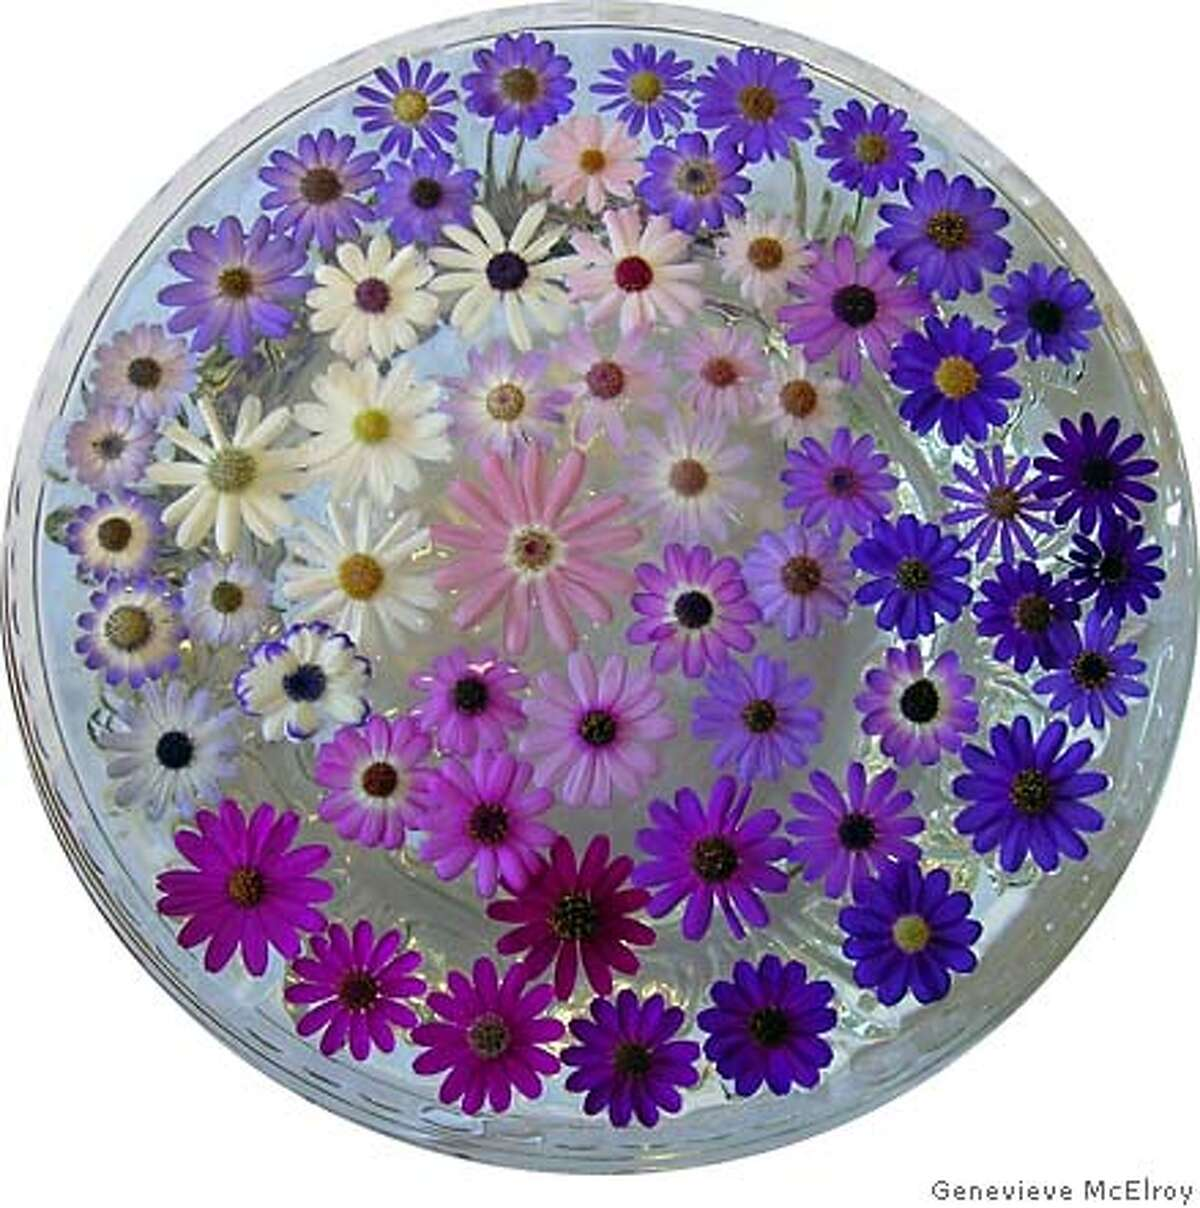 An arrangement of cineraria blooms in various colors and sizes floats in a bowl of water. Photo by Genevieve McElroy